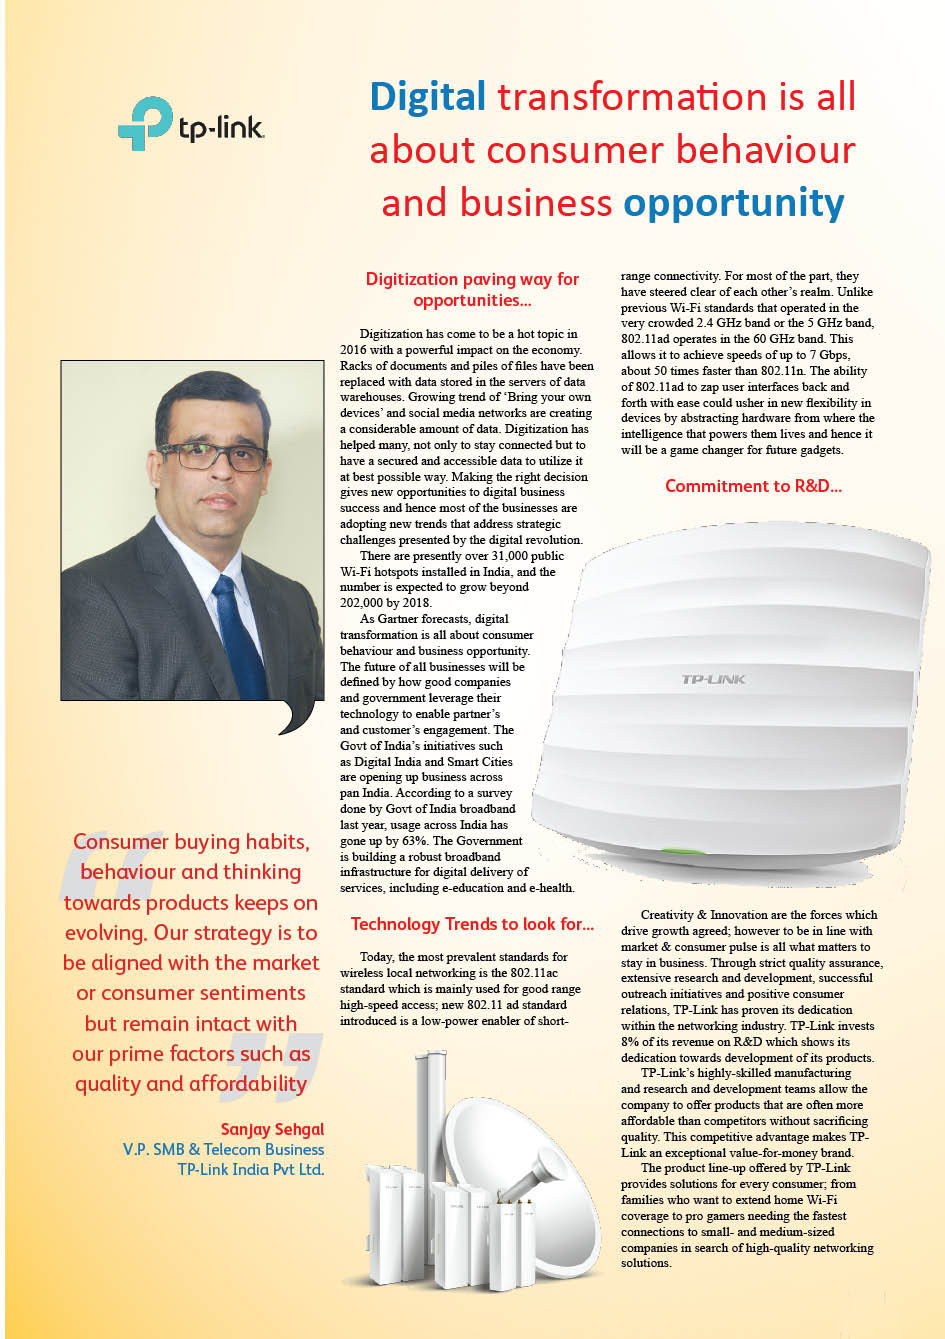 TP-Link India Pvt Ltd.  : Digital transformation is all about consumer behaviour and business opportunity